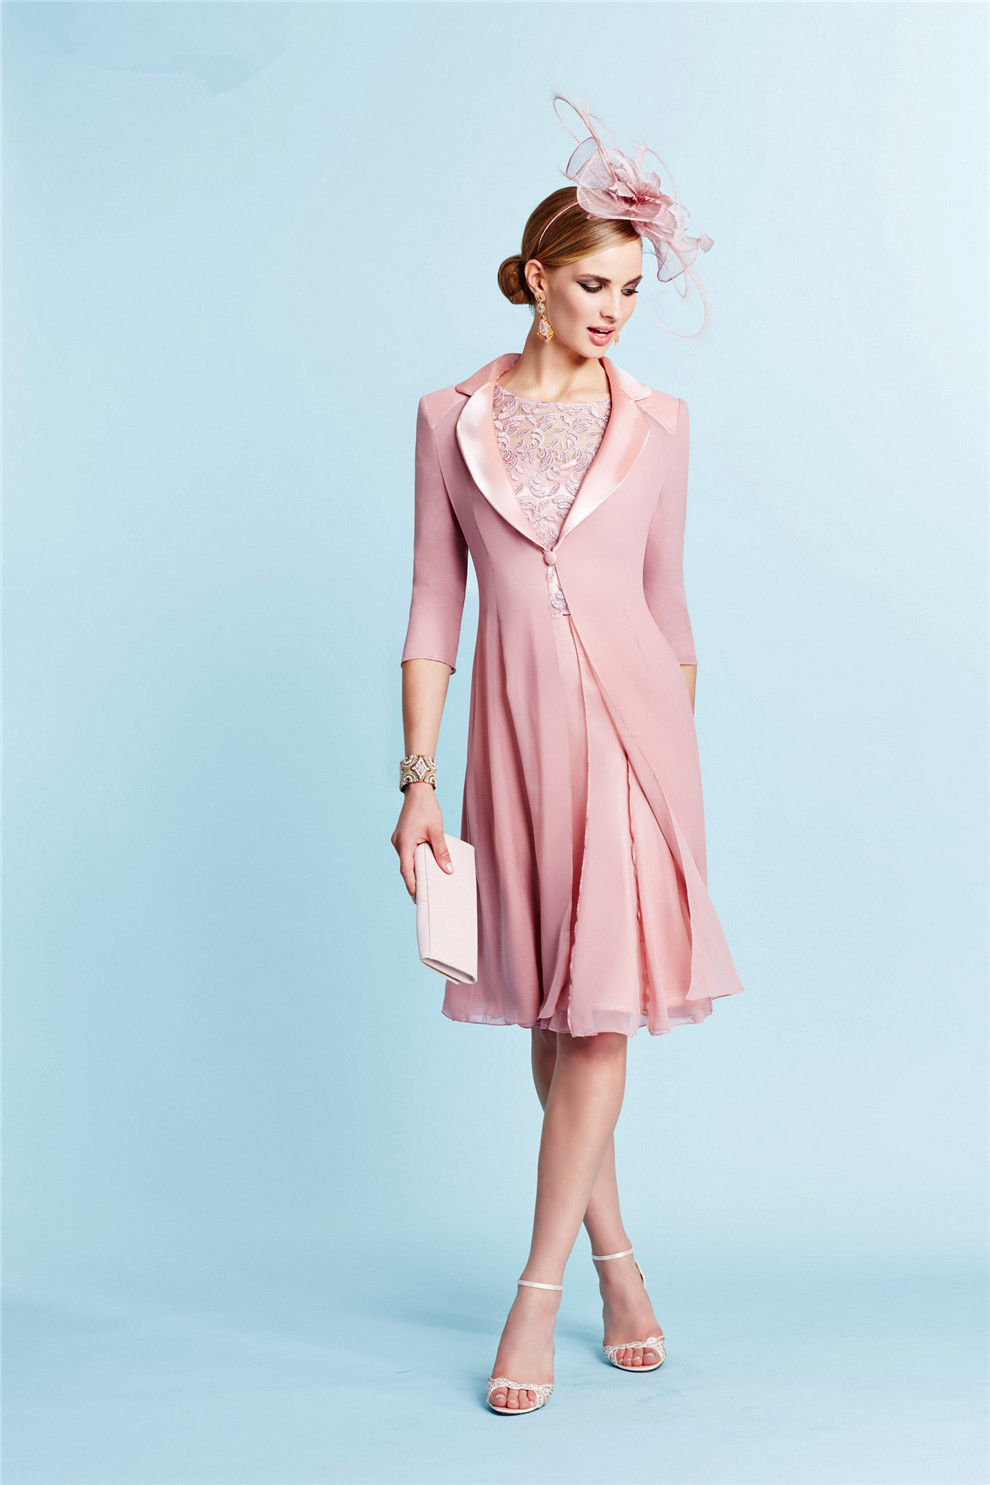 Pink Coat Dresses for Women | Dress images